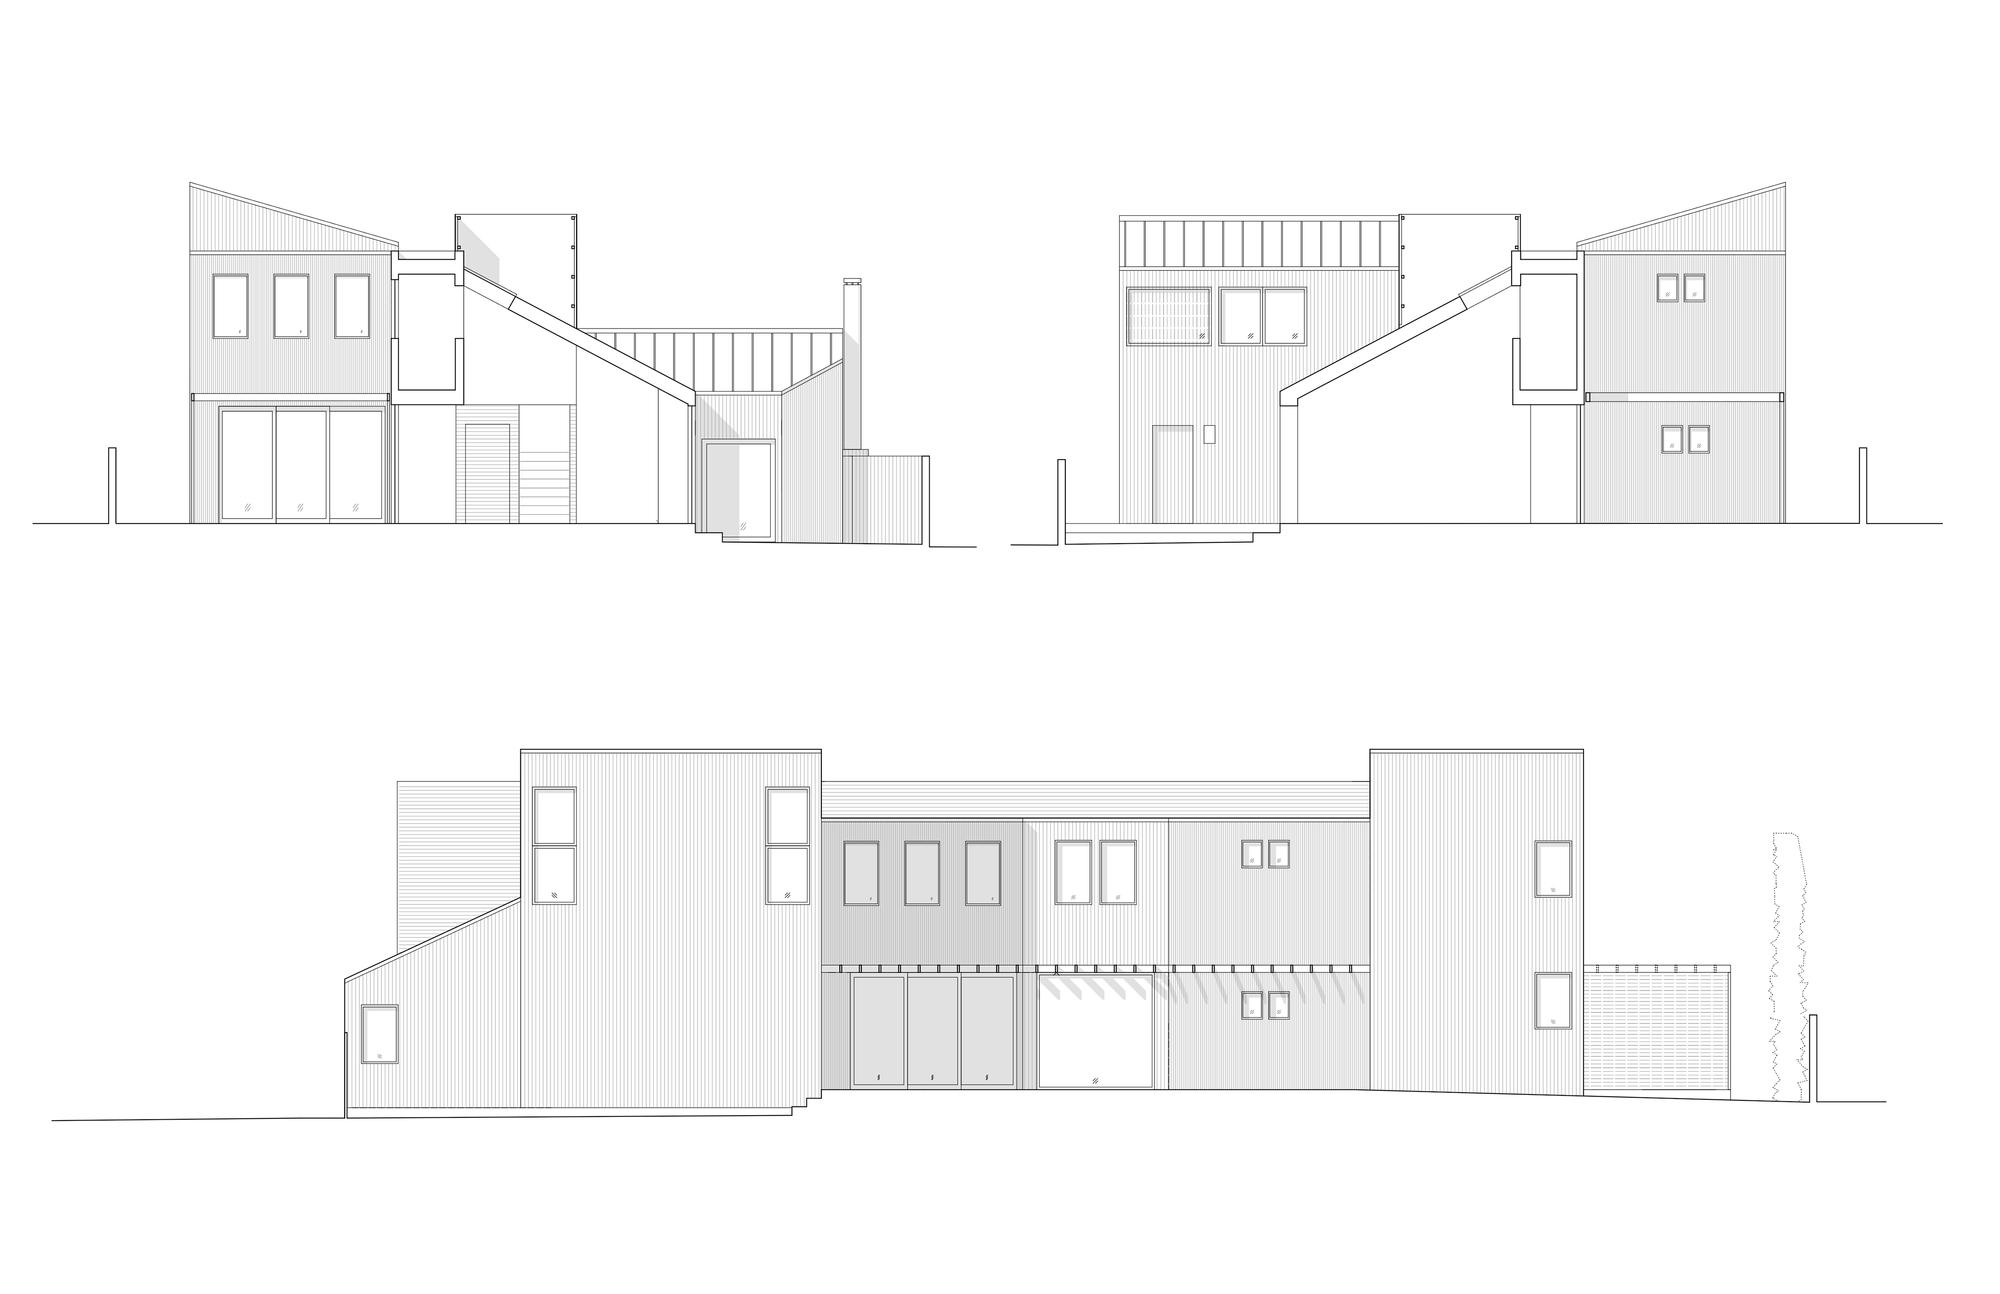 4_elevations_sections.jpg